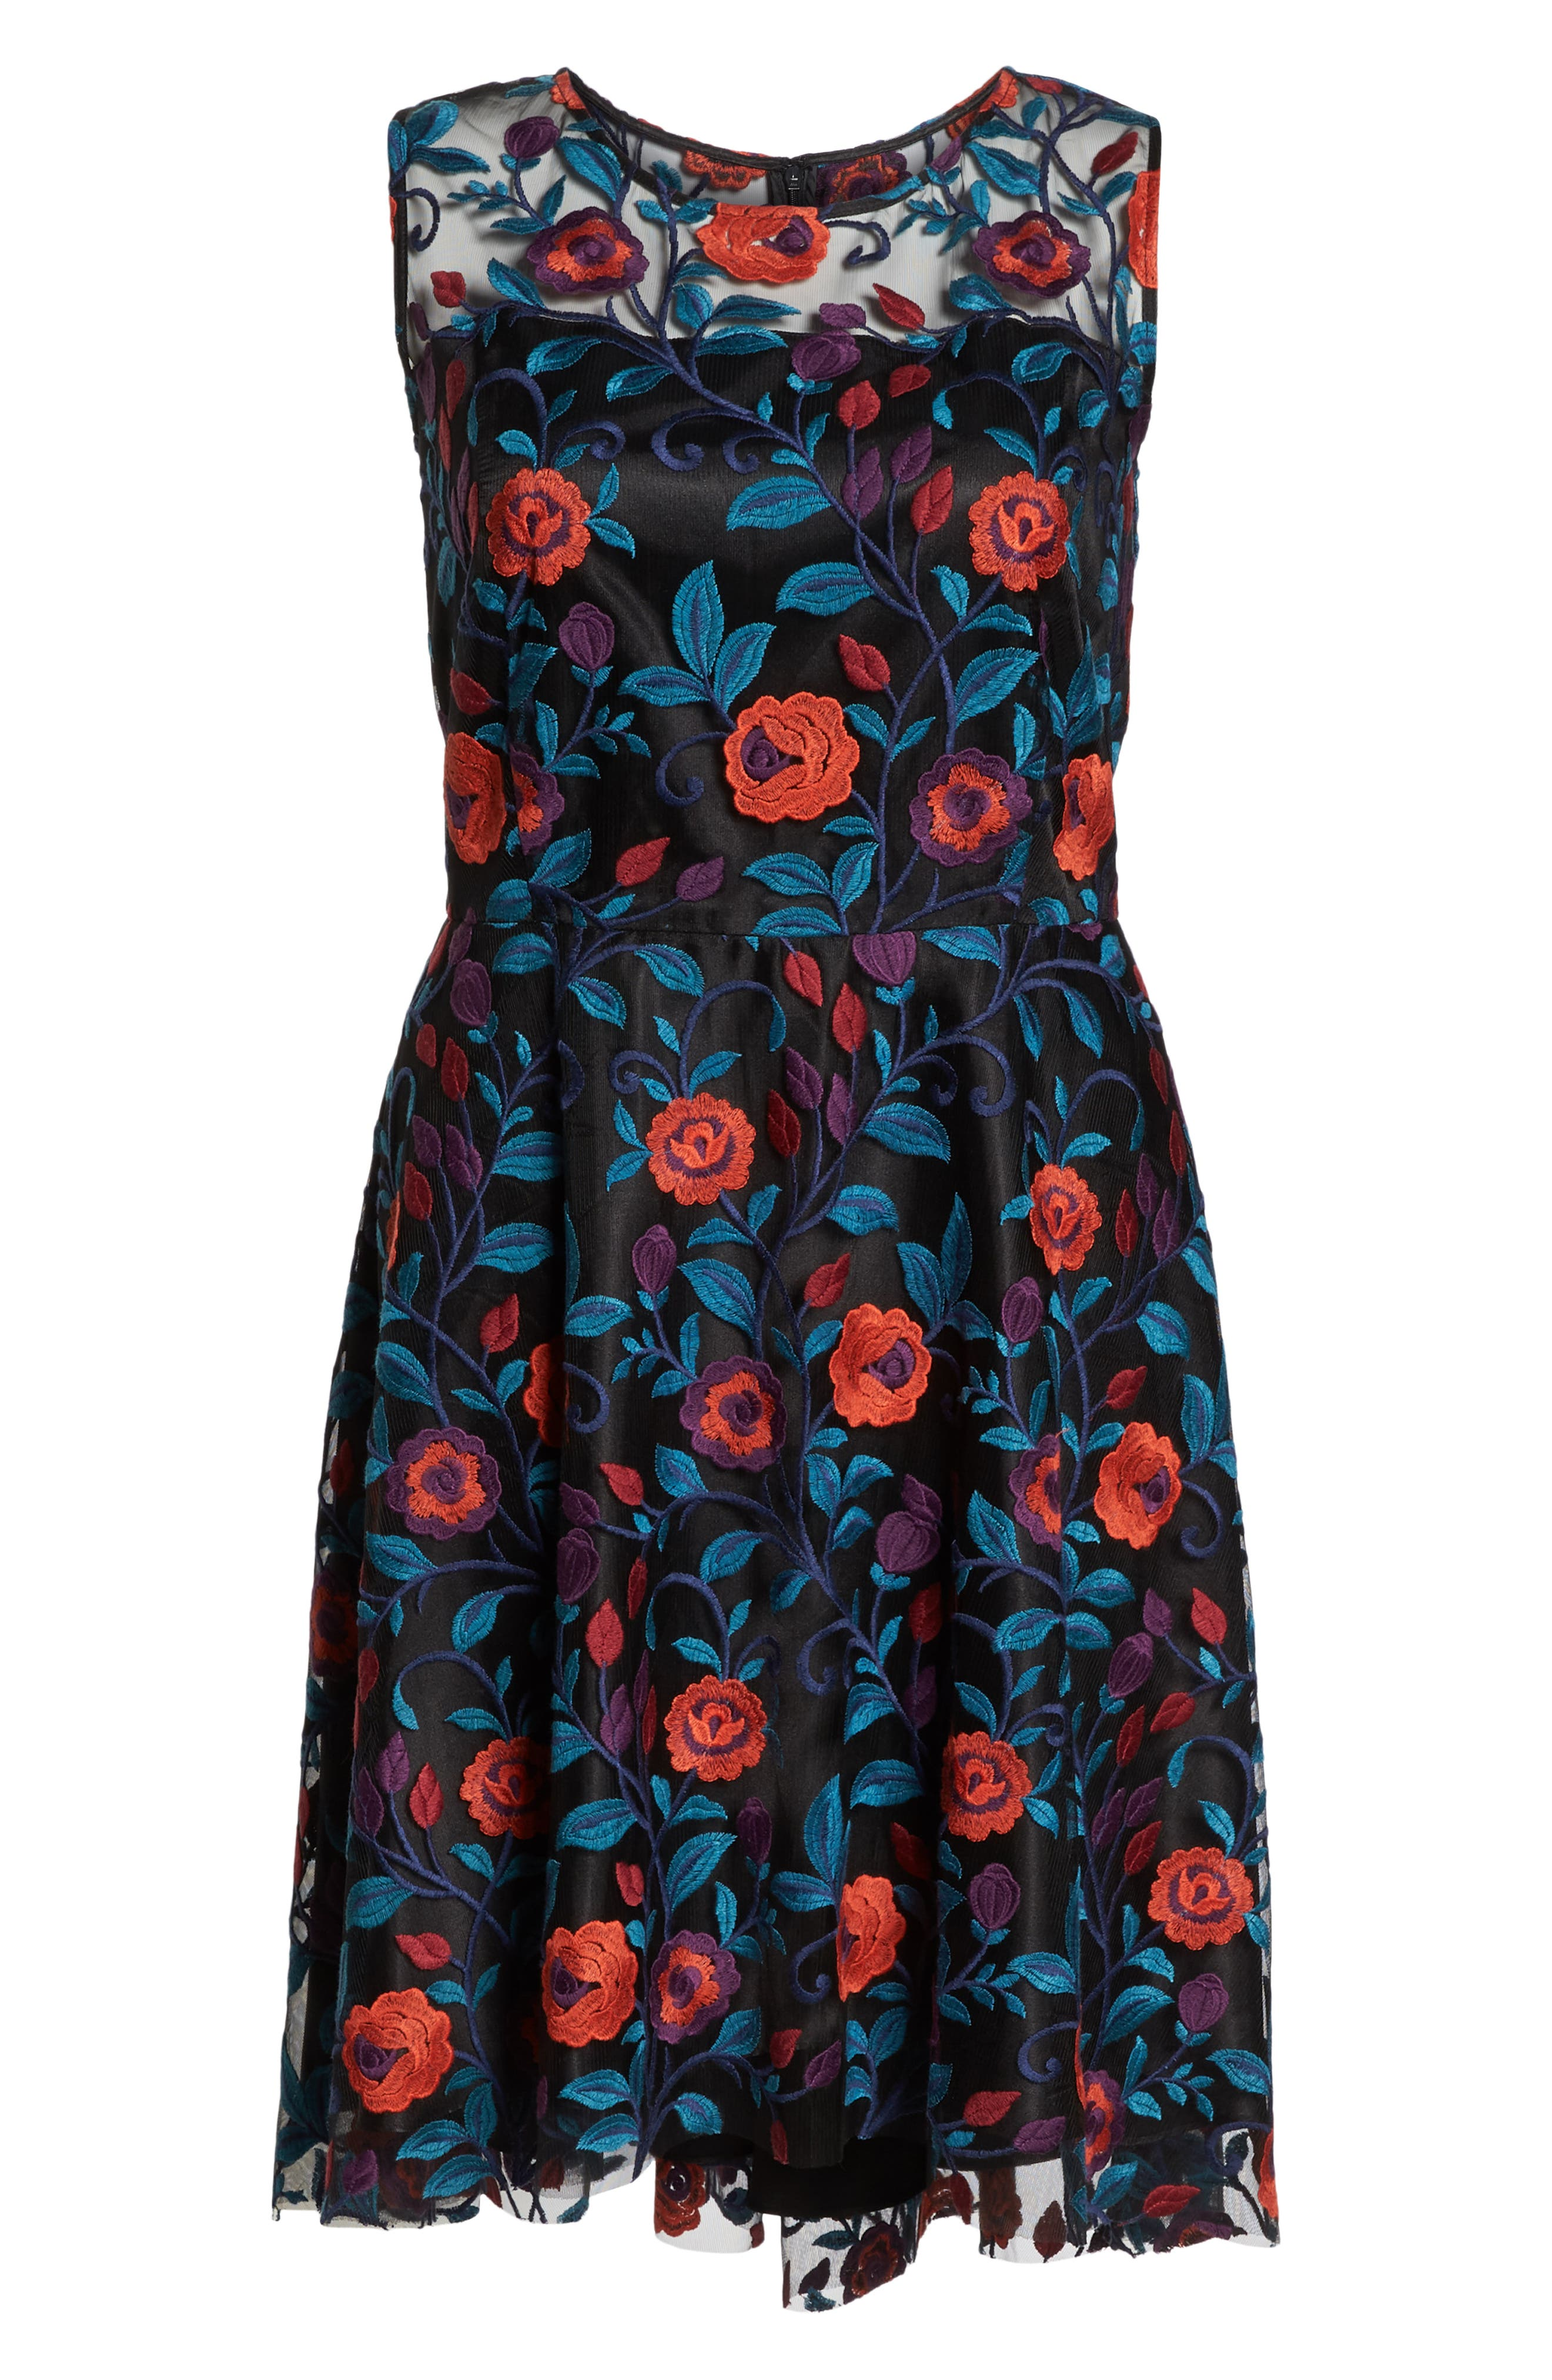 Floral Embroidery Fit and Flare Dress,                             Alternate thumbnail 6, color,                             BLACK/ TEAL/ RED